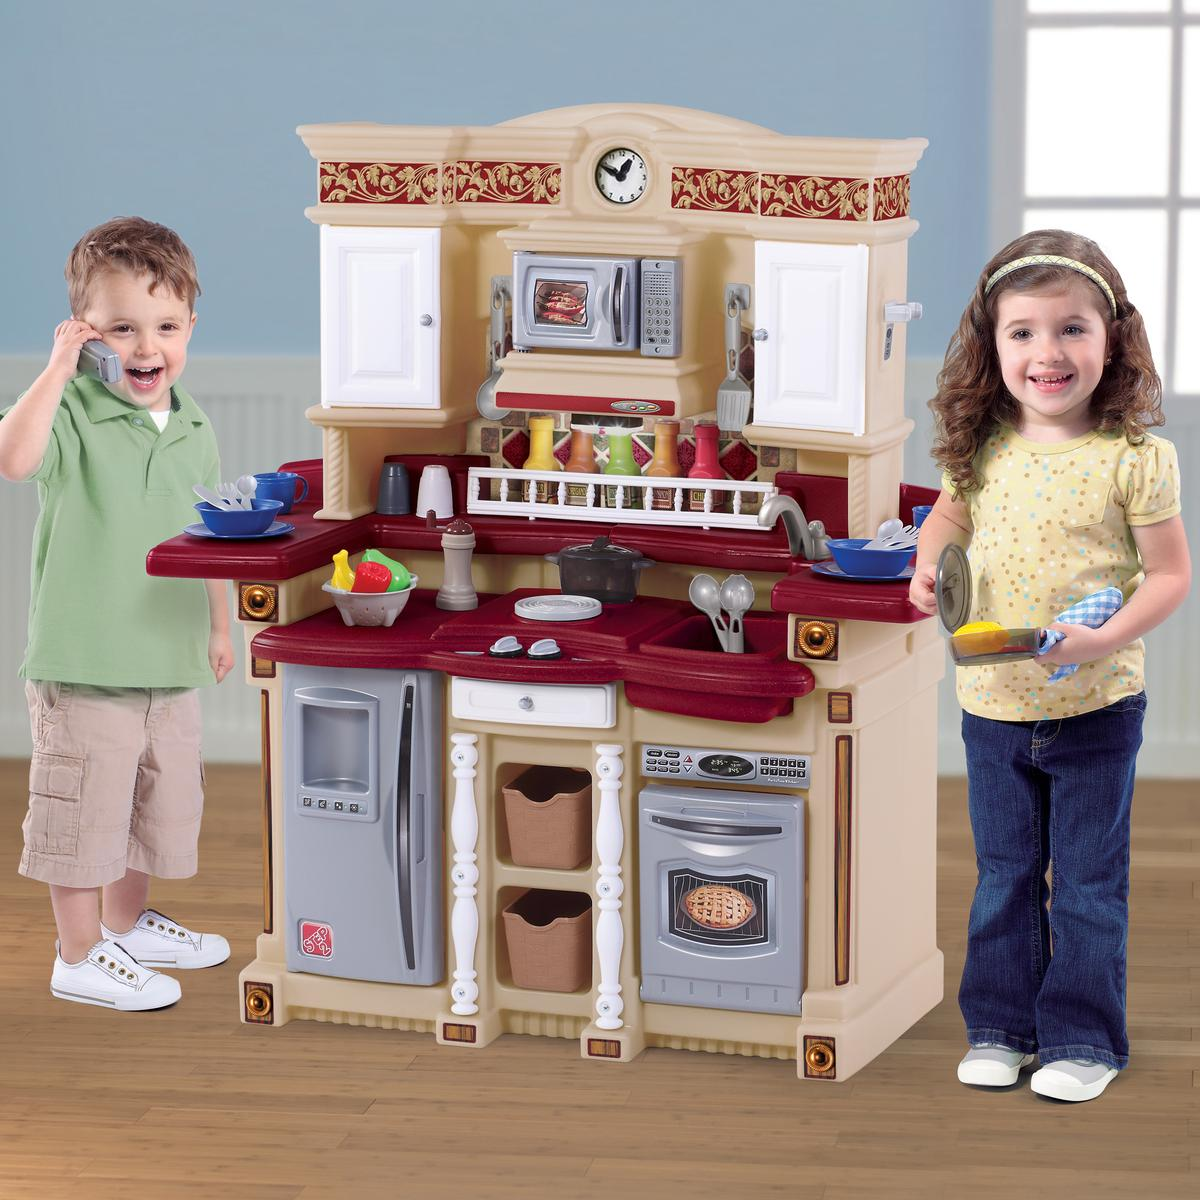 step2 lifestyle partytime kitchen step2 kitchens rh activitytoysdirect com step 2 partytime kitchen uk step 2 partytime kitchen accessories